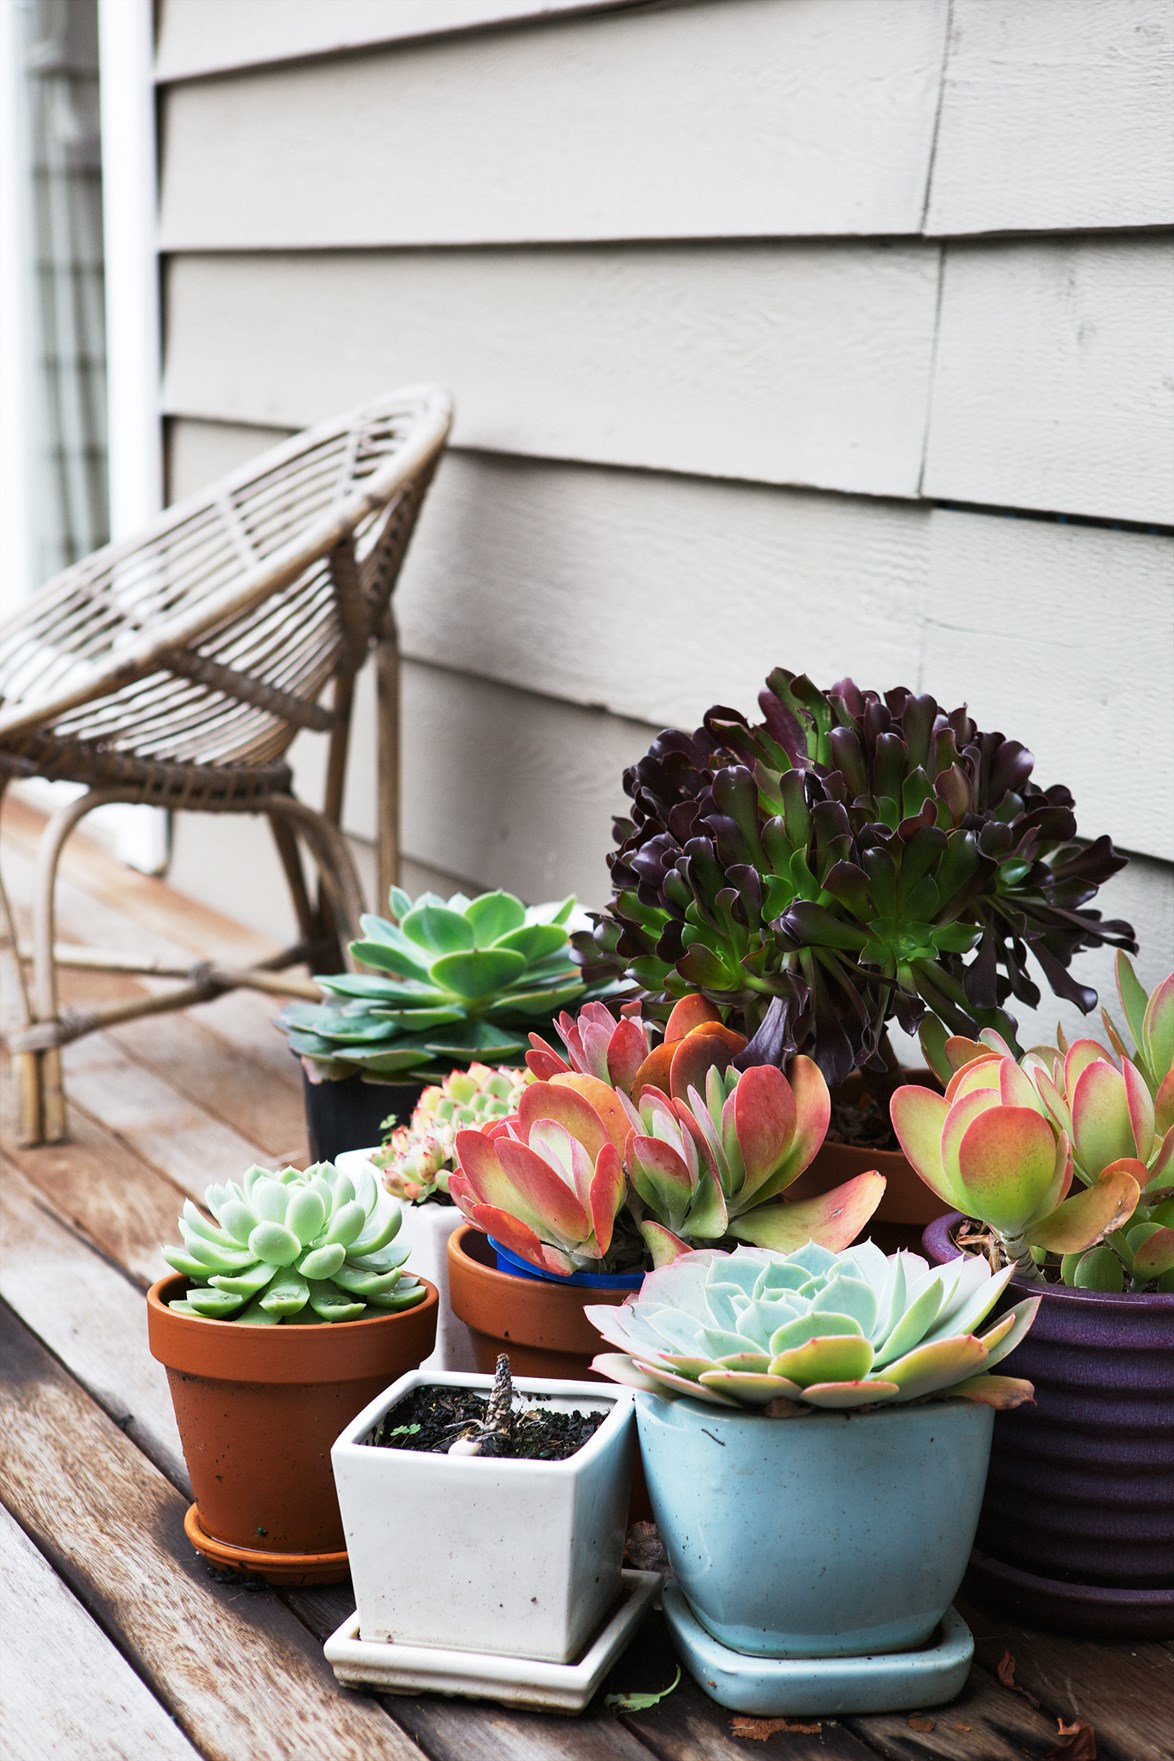 A cluster of colourful succulents makes an eye-catching display. *Photo:* Chris Court